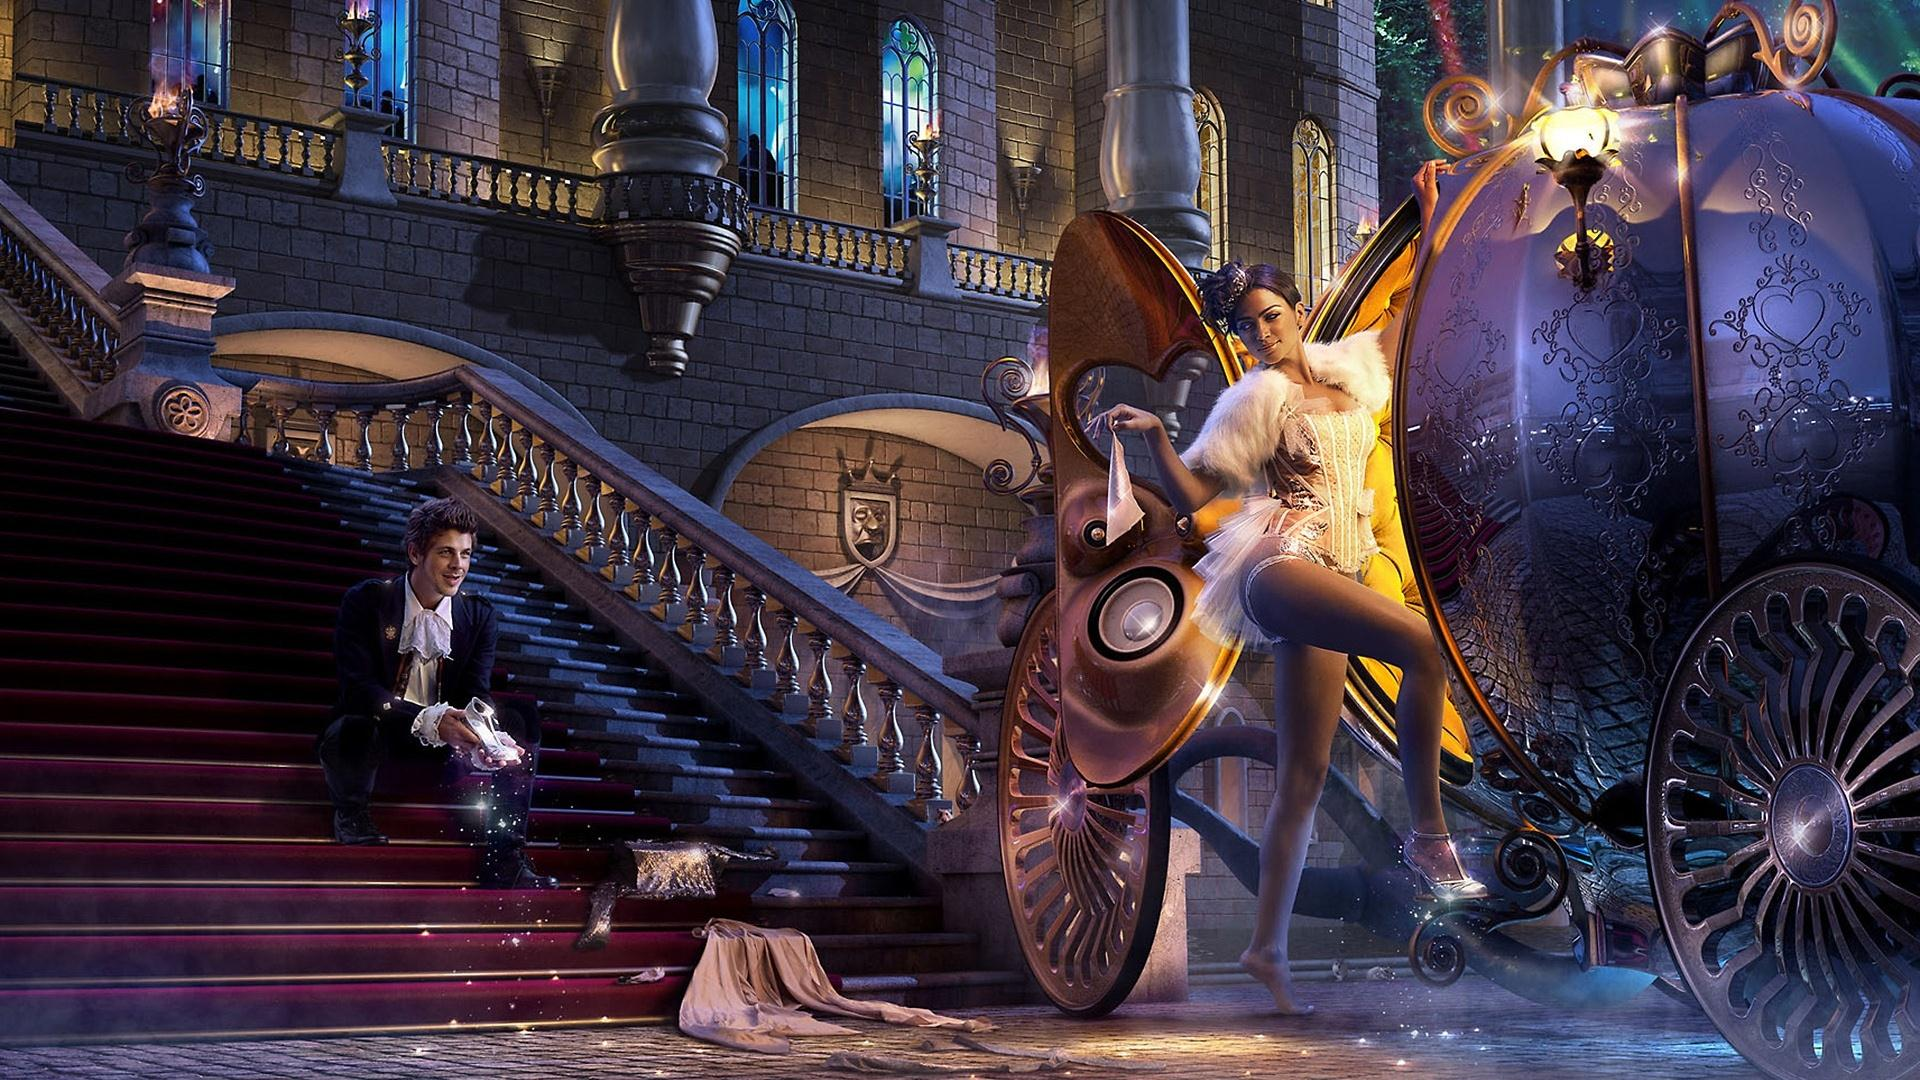 wallpaper hd von cinderella